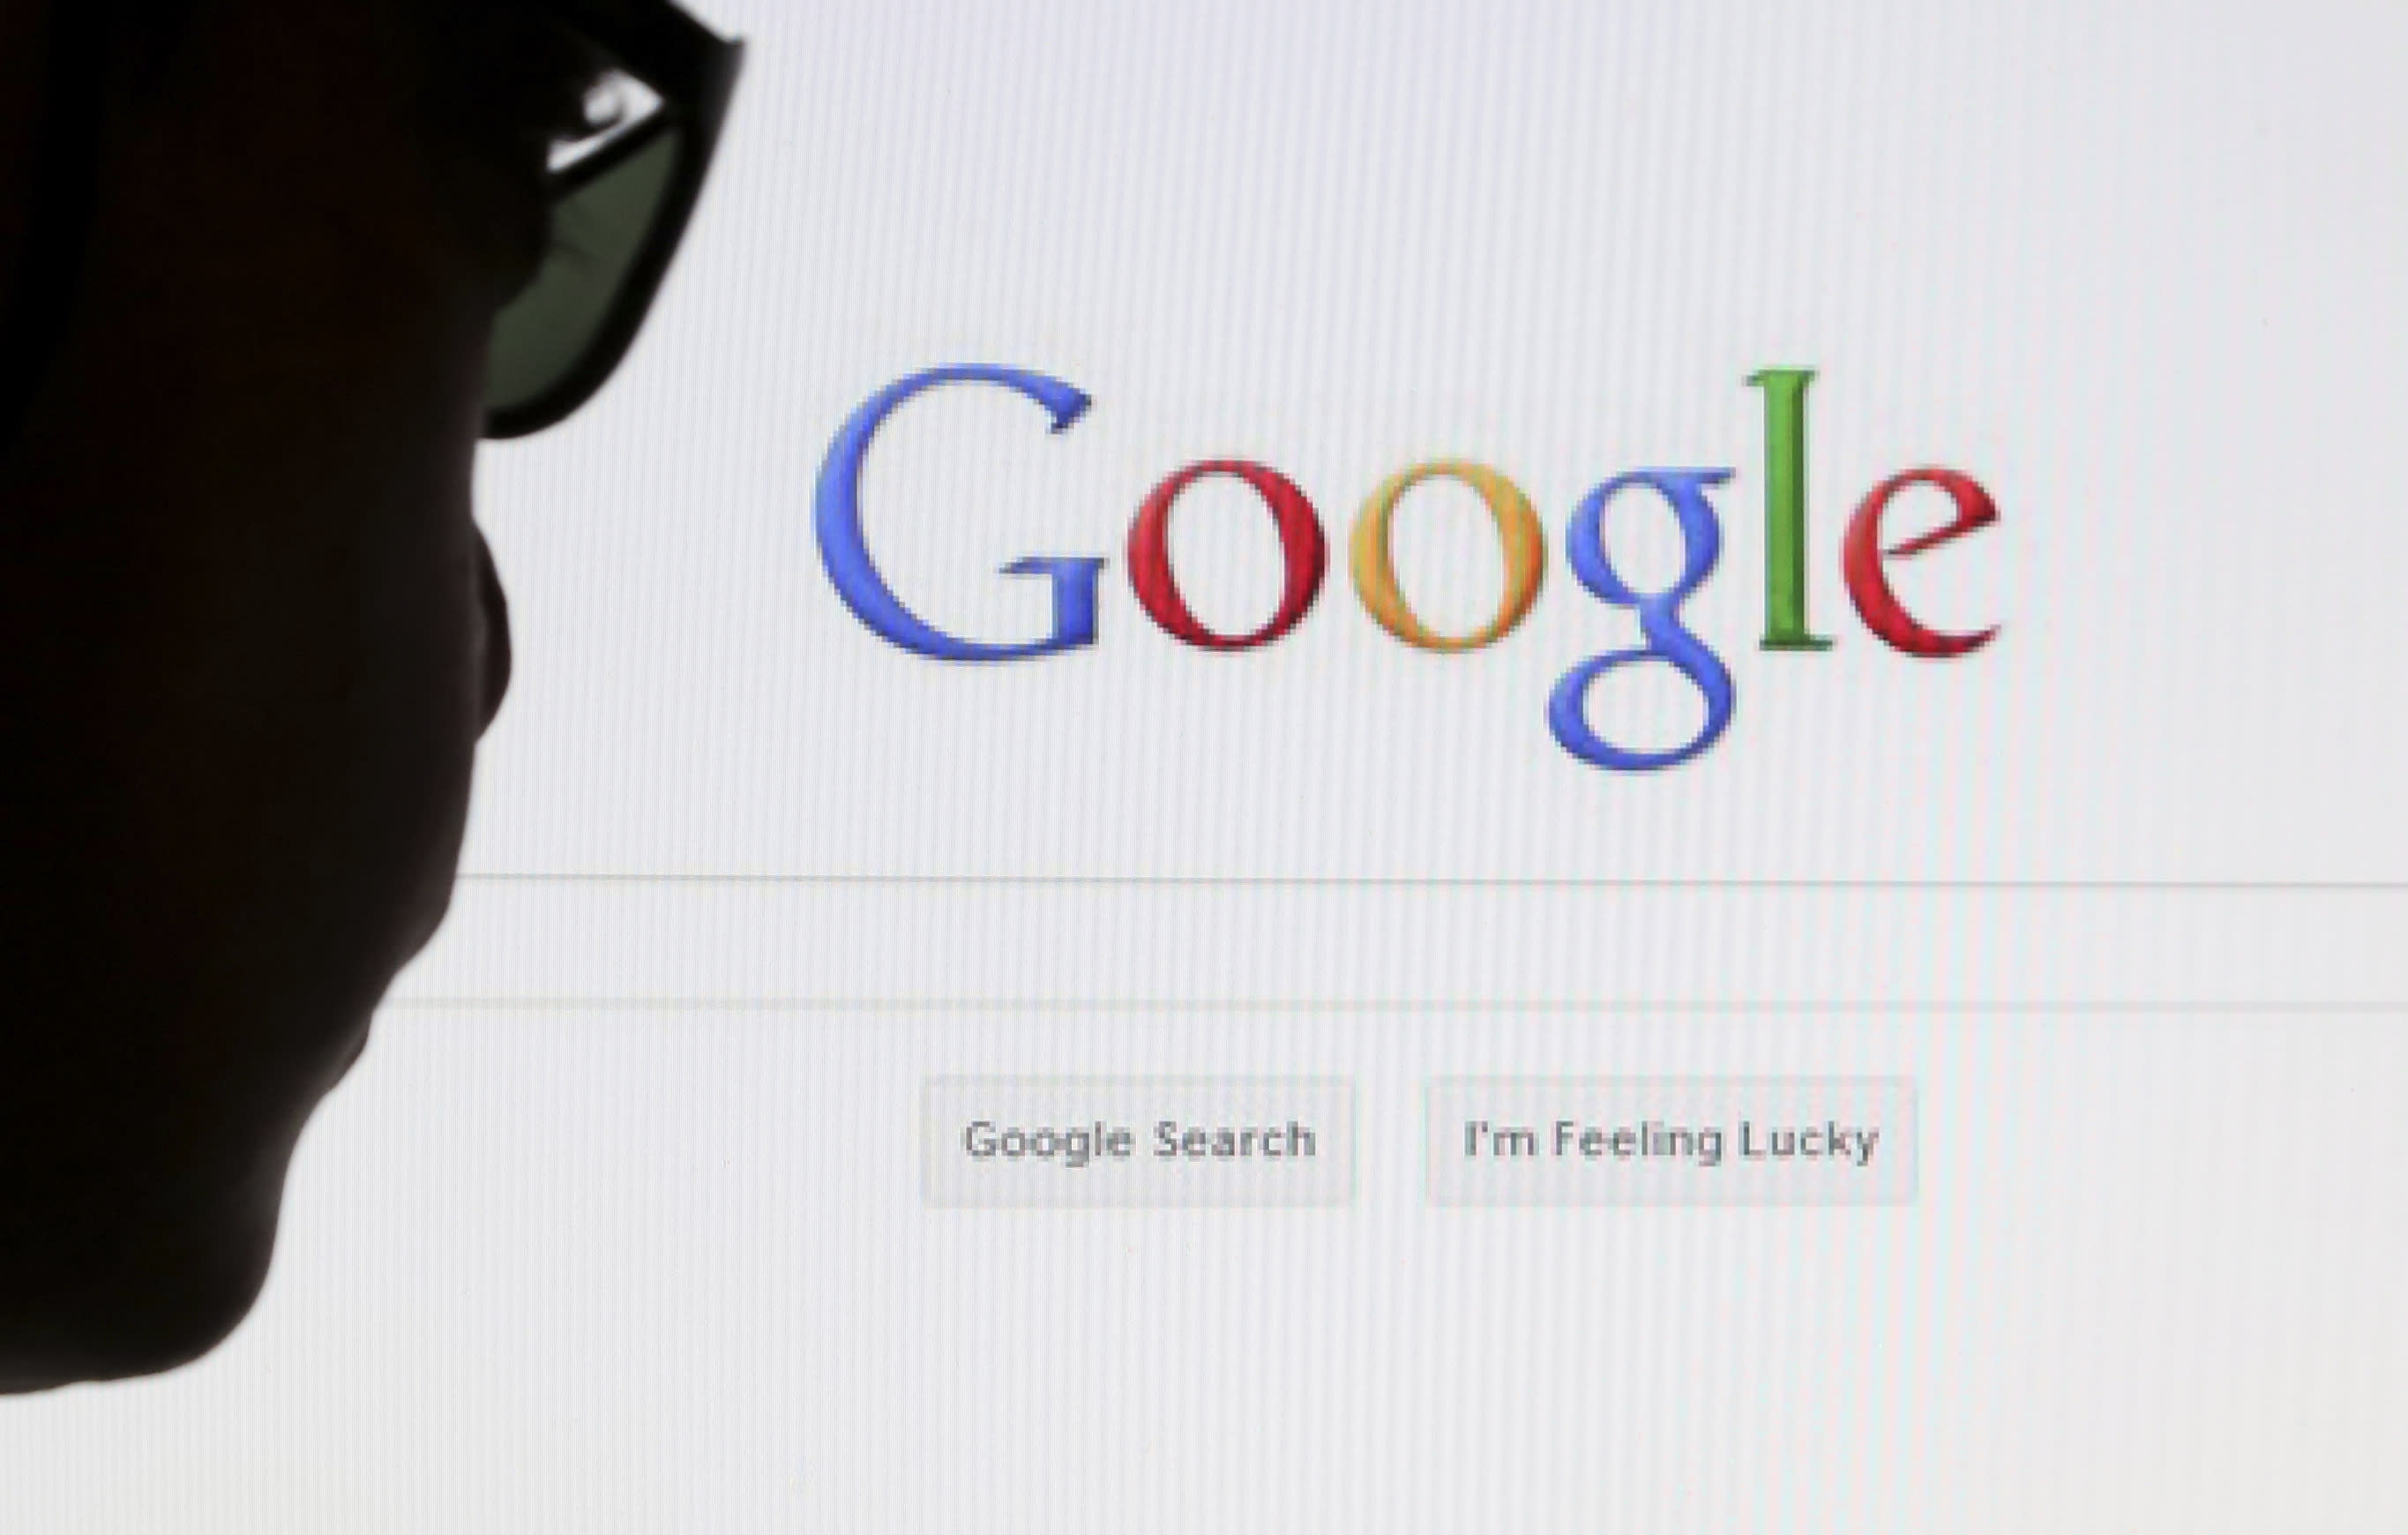 Savers targeted with ads on Google for 'bonds' that put all their money at risk